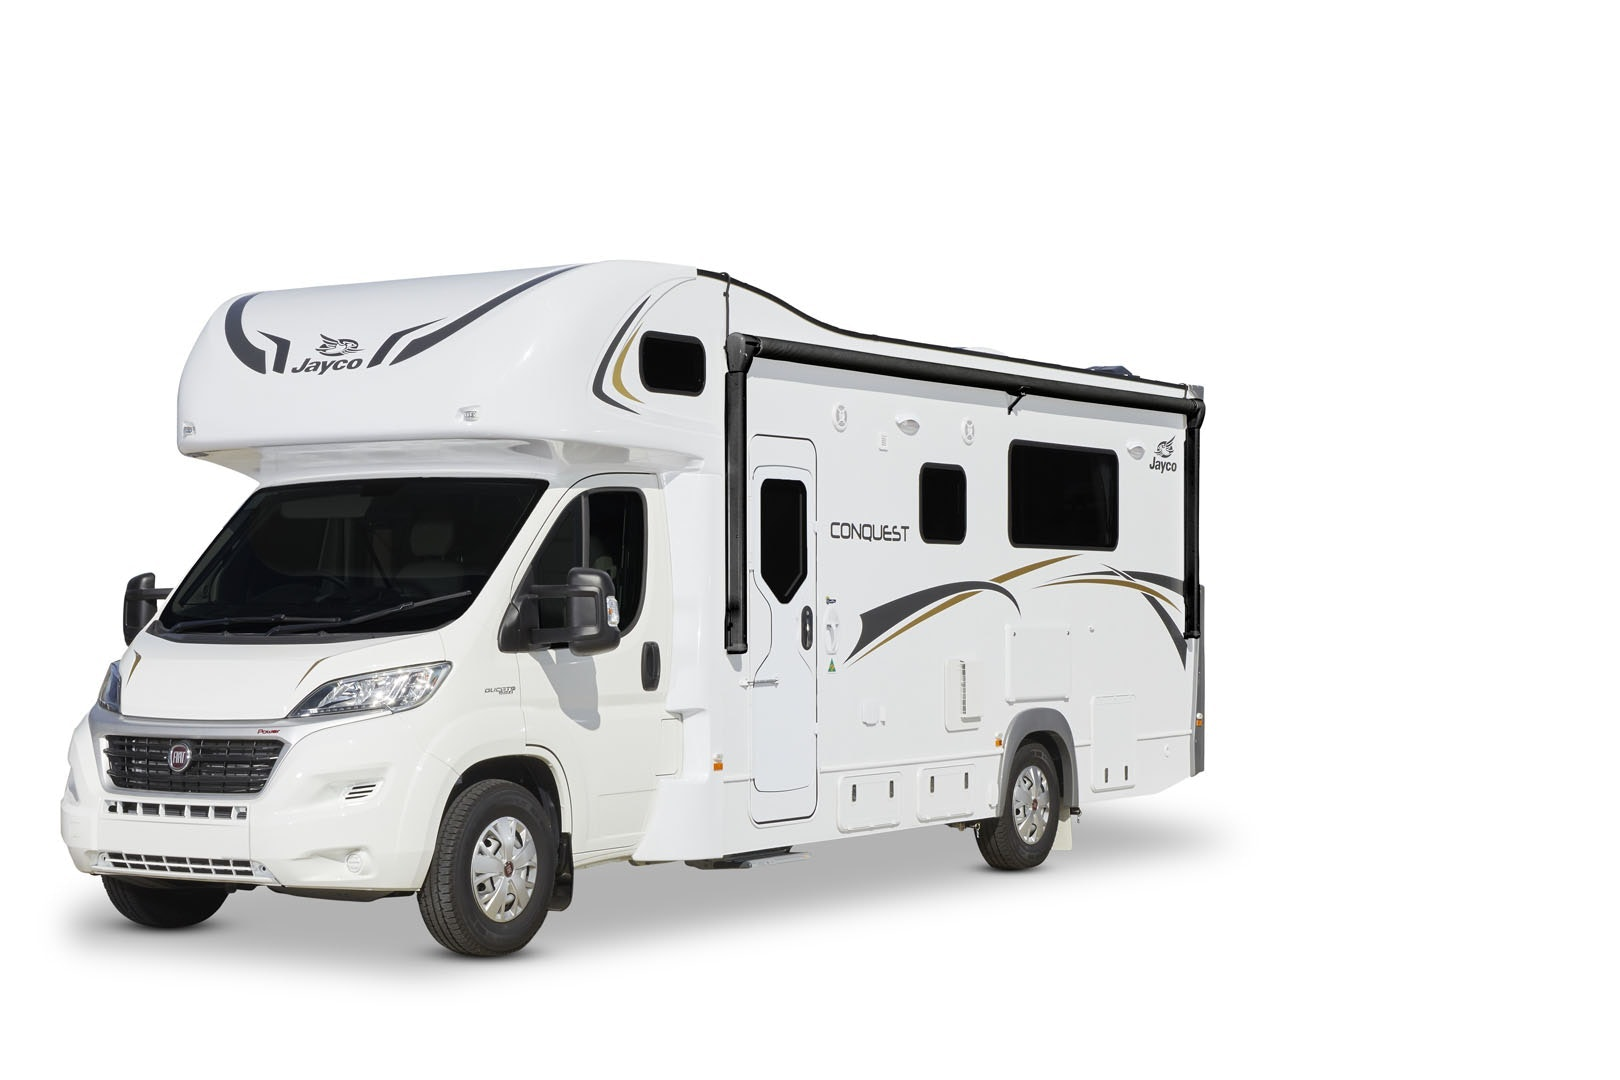 Jayco Conquest DX